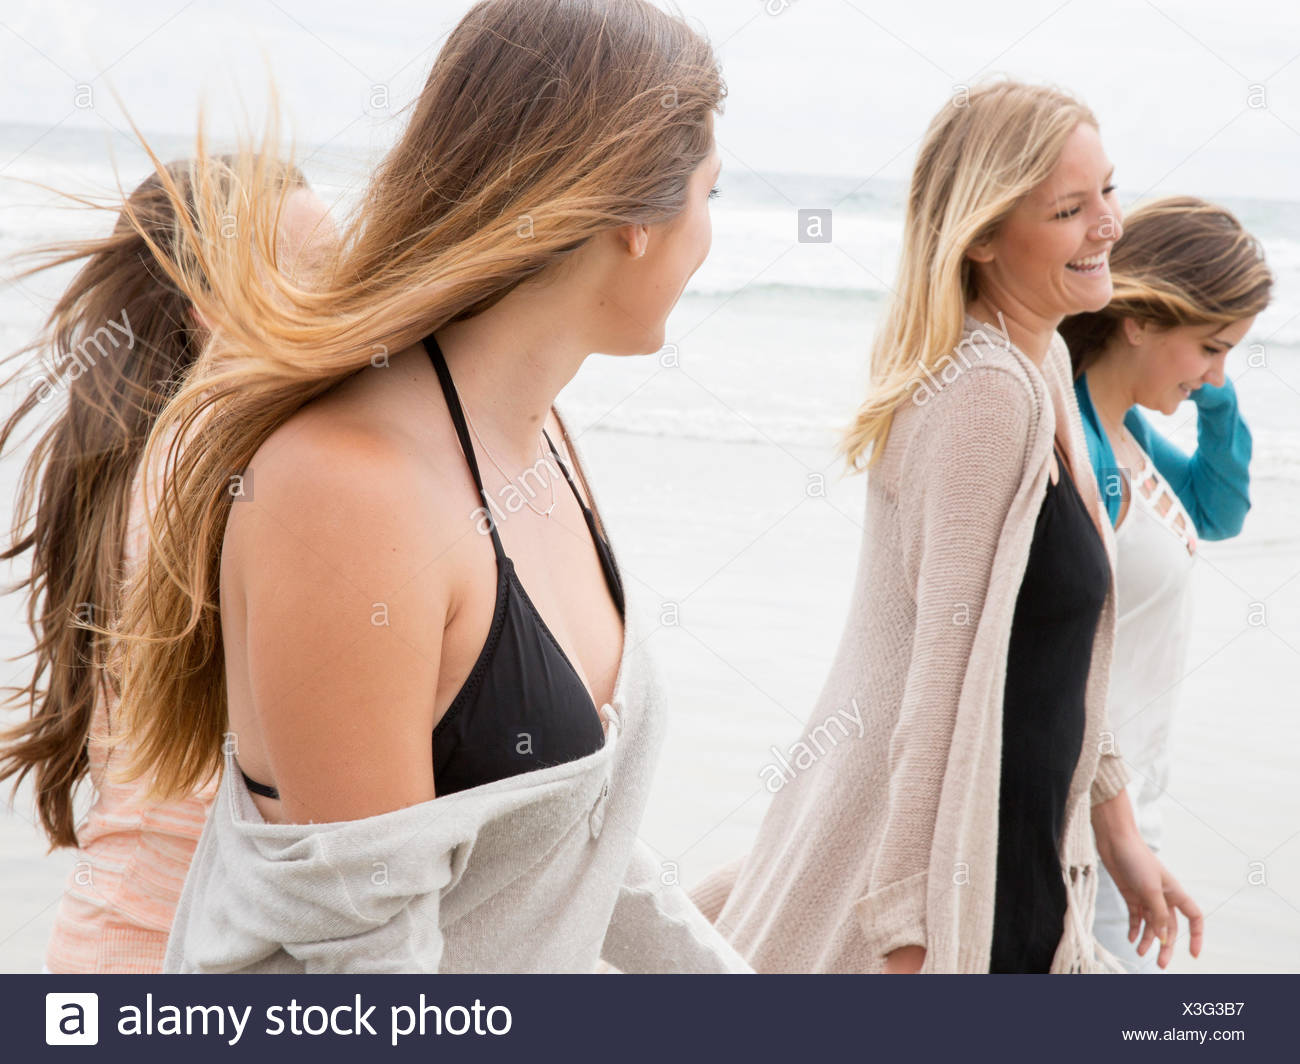 Four young women walking on a beach - Stock Image